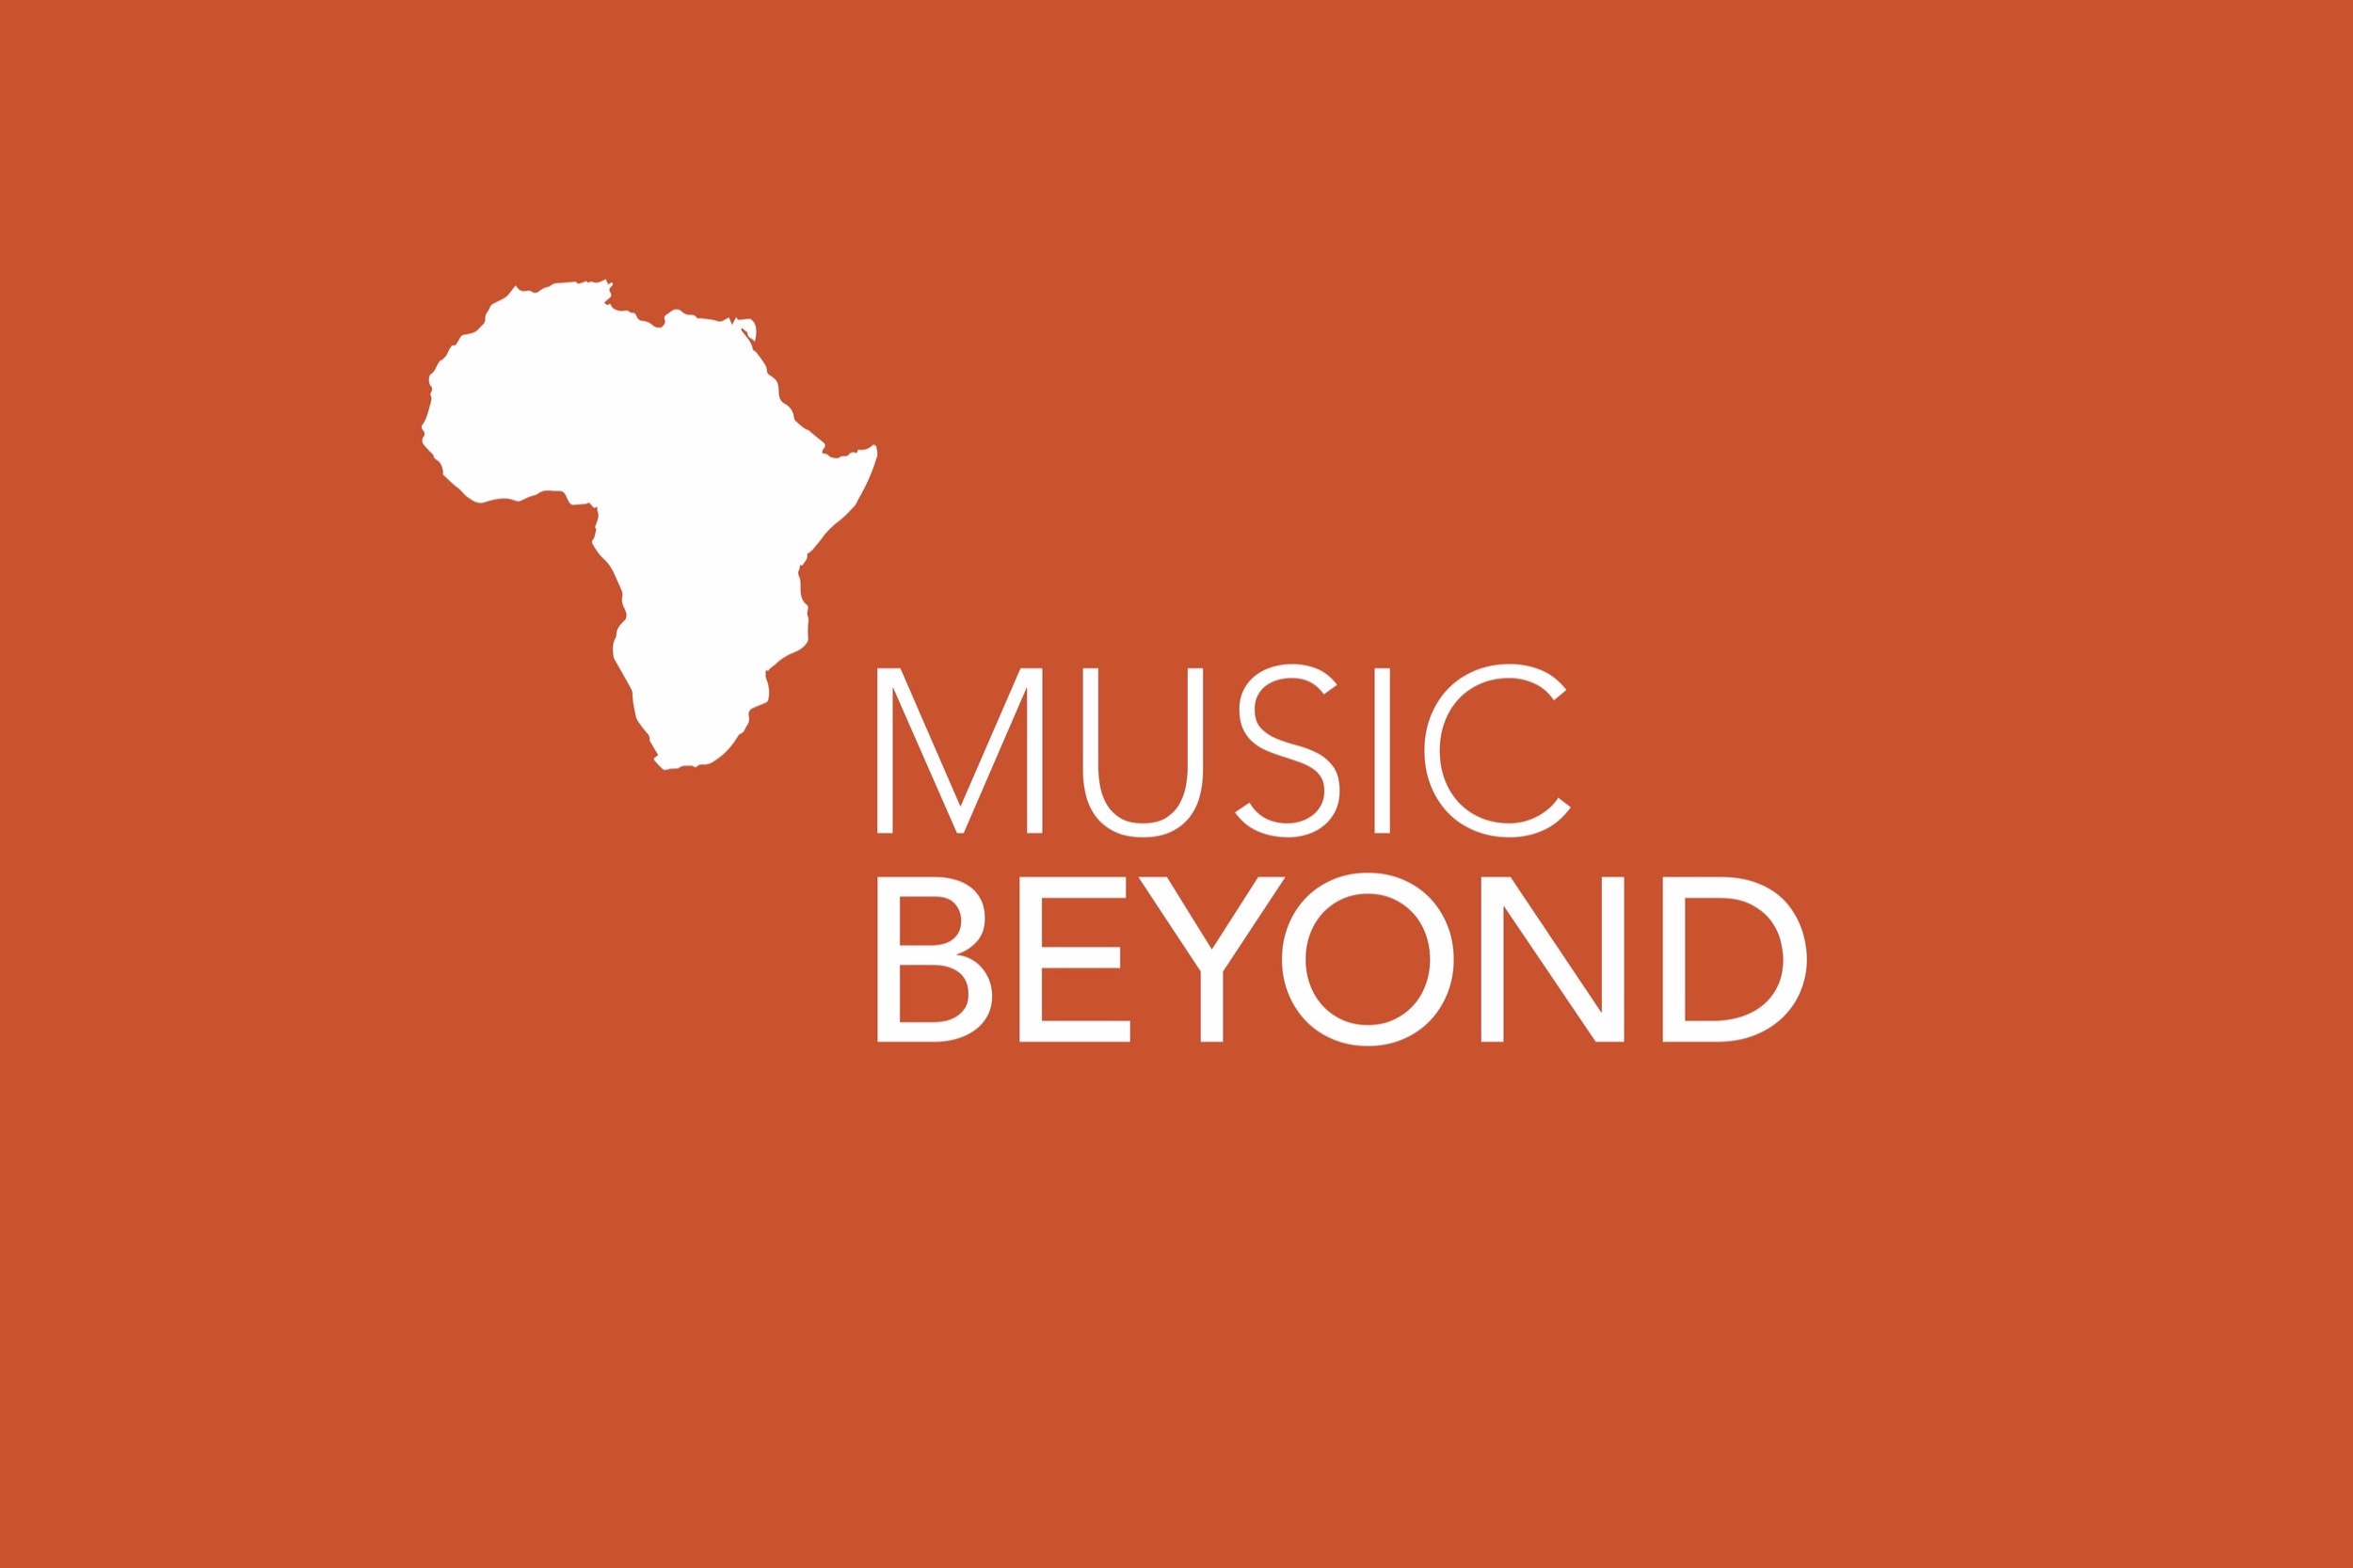 Music Beyond - Logo (.jpg)